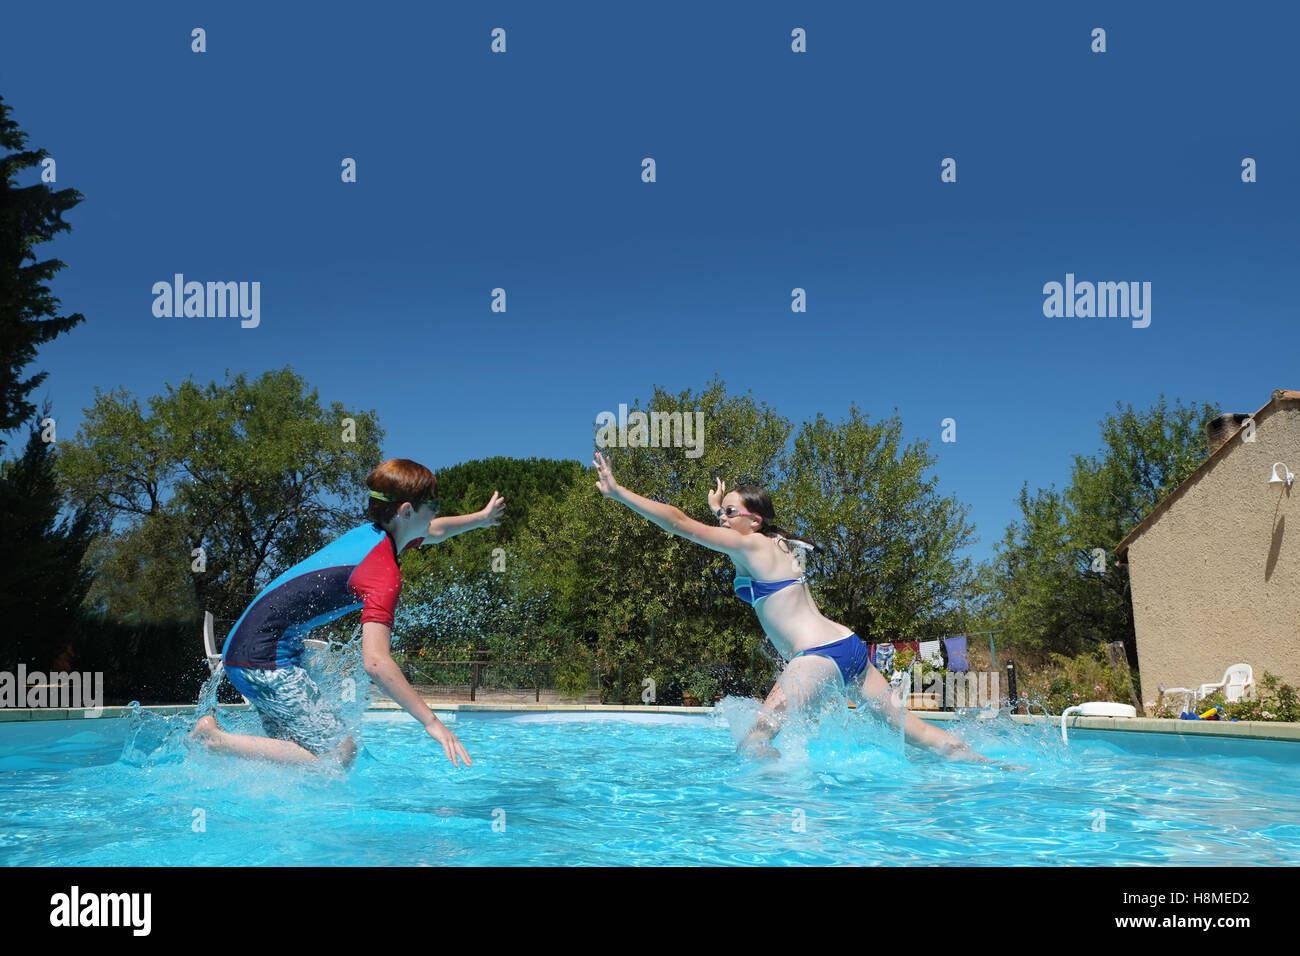 two children play in a swimming pool jumping and trying to meet in the middle and high five each others hands in - Stock Image